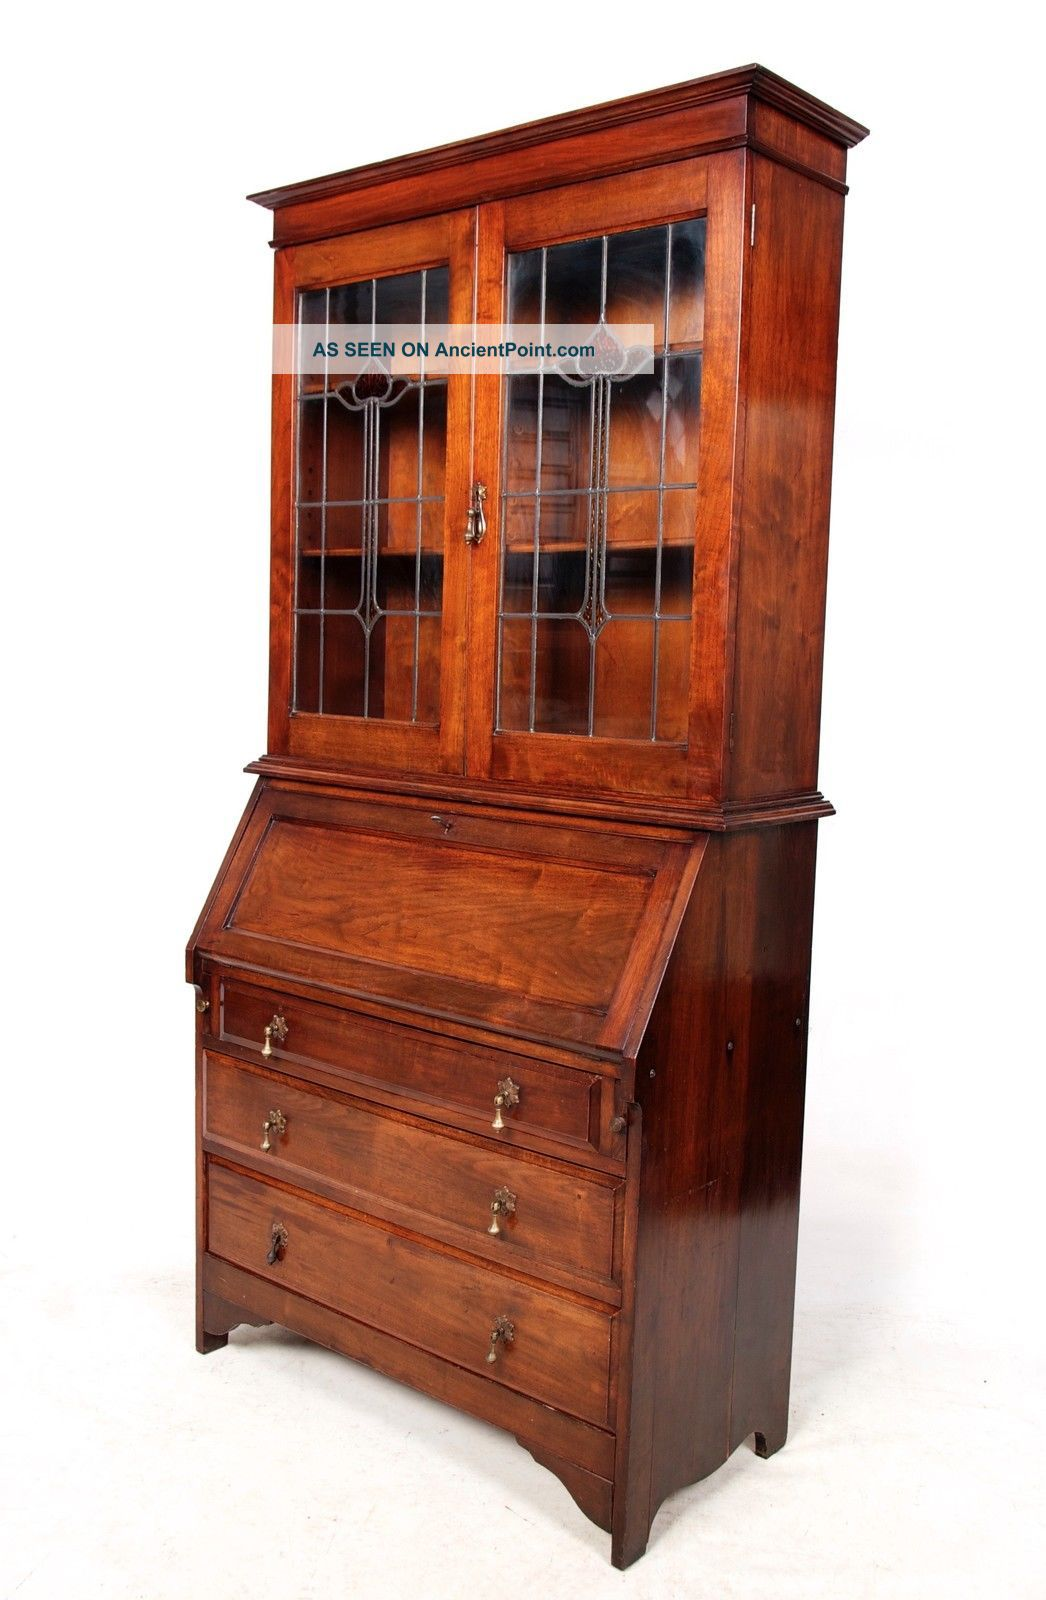 Antique Secretaire Bureau Bookcase Mahogany Leaded Stained Glass Writing Desk Ch 20th Century photo